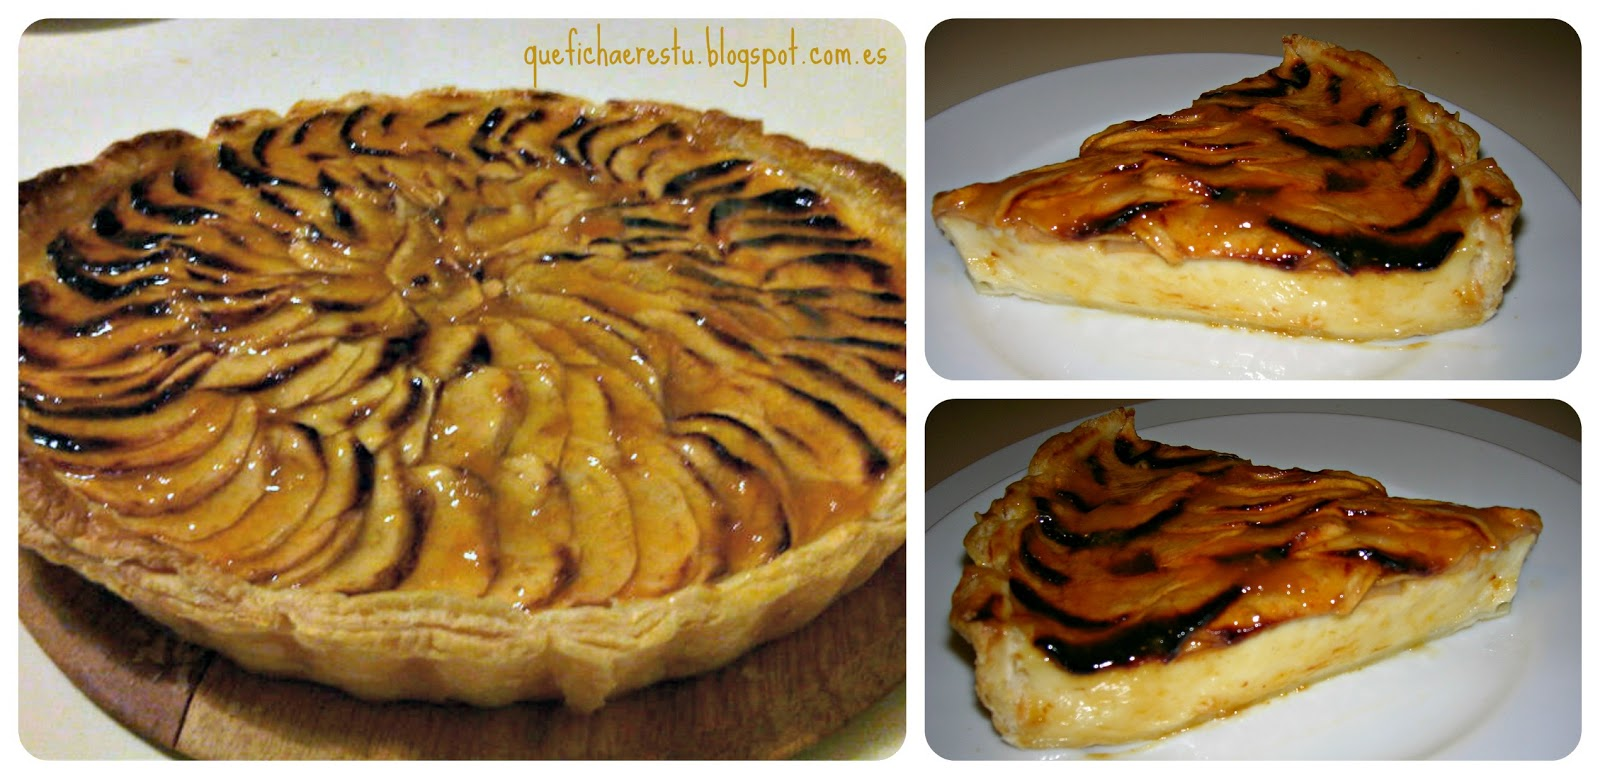 tarta de manzana de mi abuela / My grandmother's apple pie